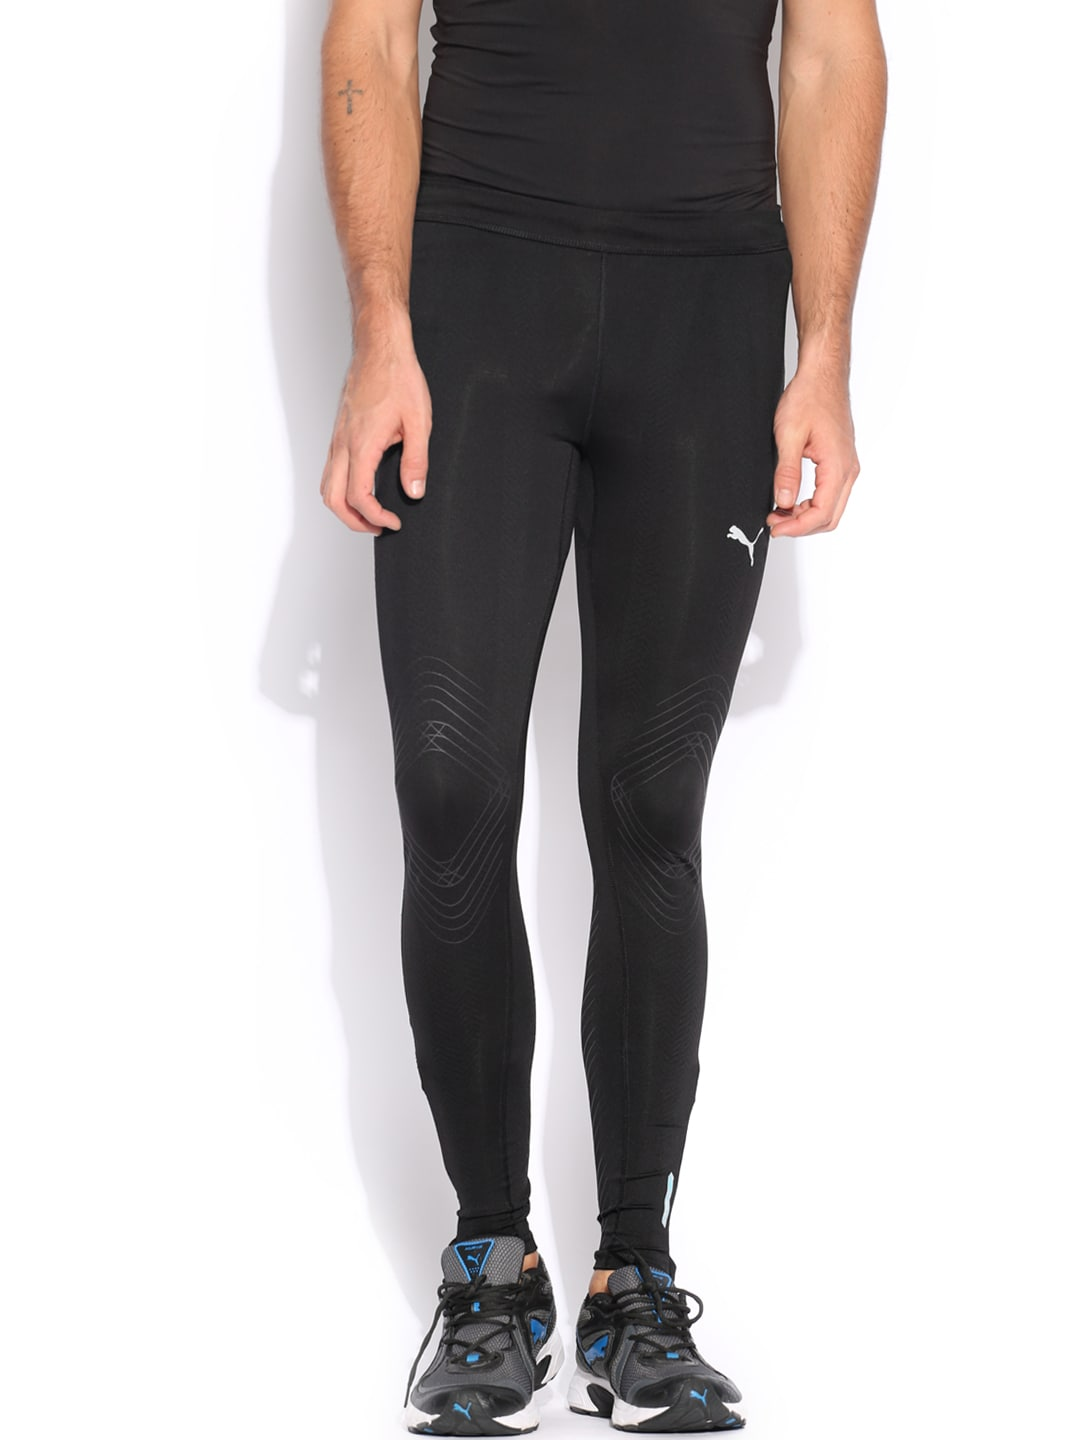 PUMA Men Black Printed Compression Tights